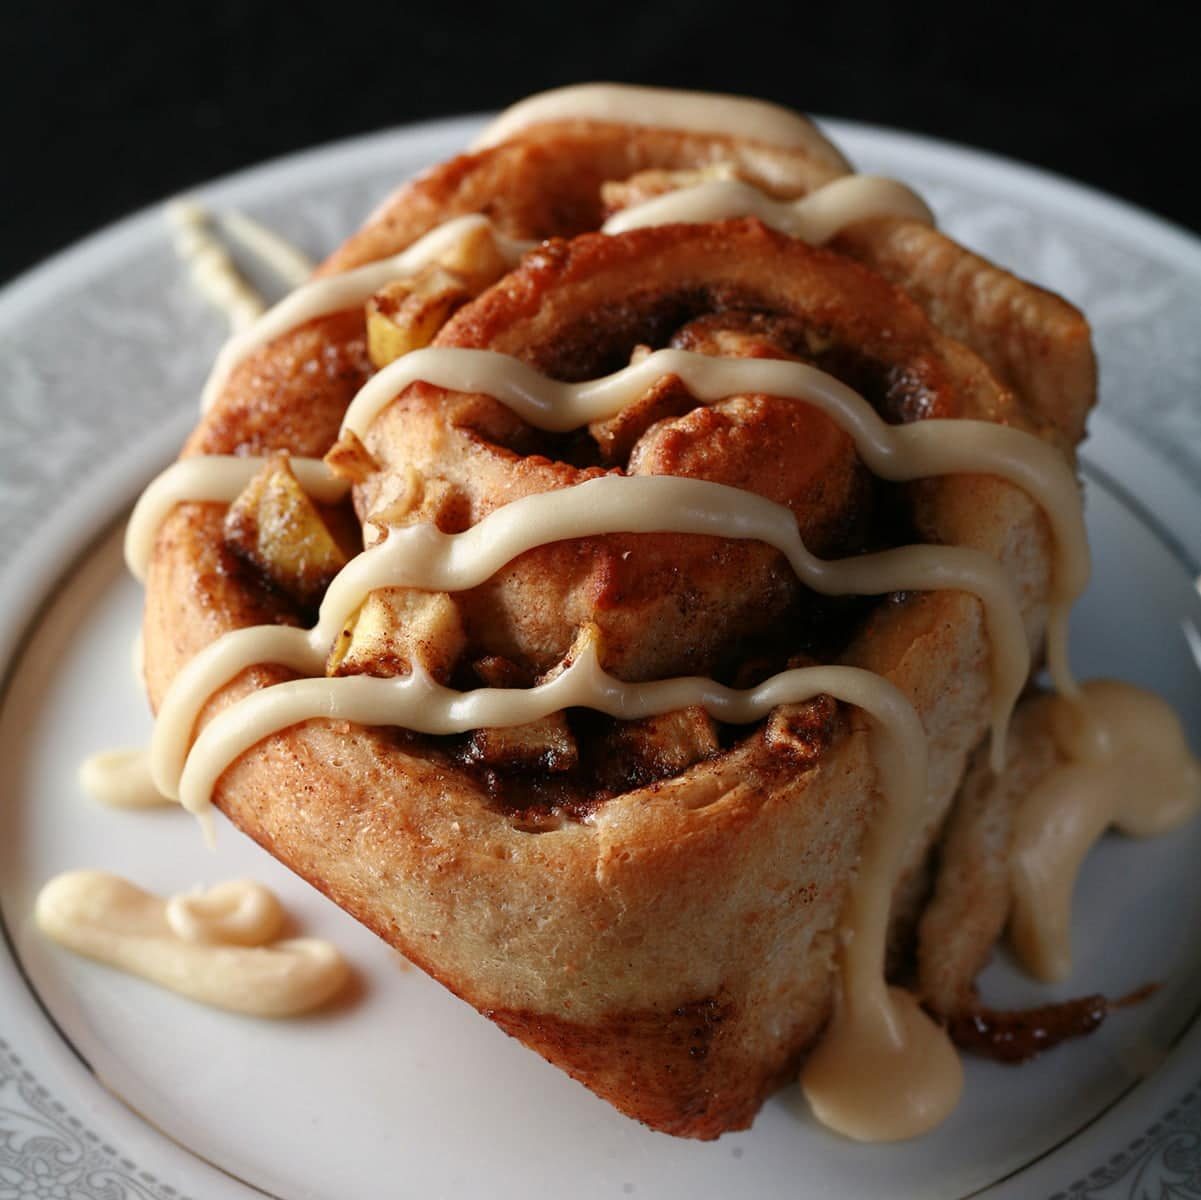 Close up photo of an apple cinnamon bun - a cinnamon bun, with small pieces of apple throughout the cinnamon swirl - drizzled with maple glaze.